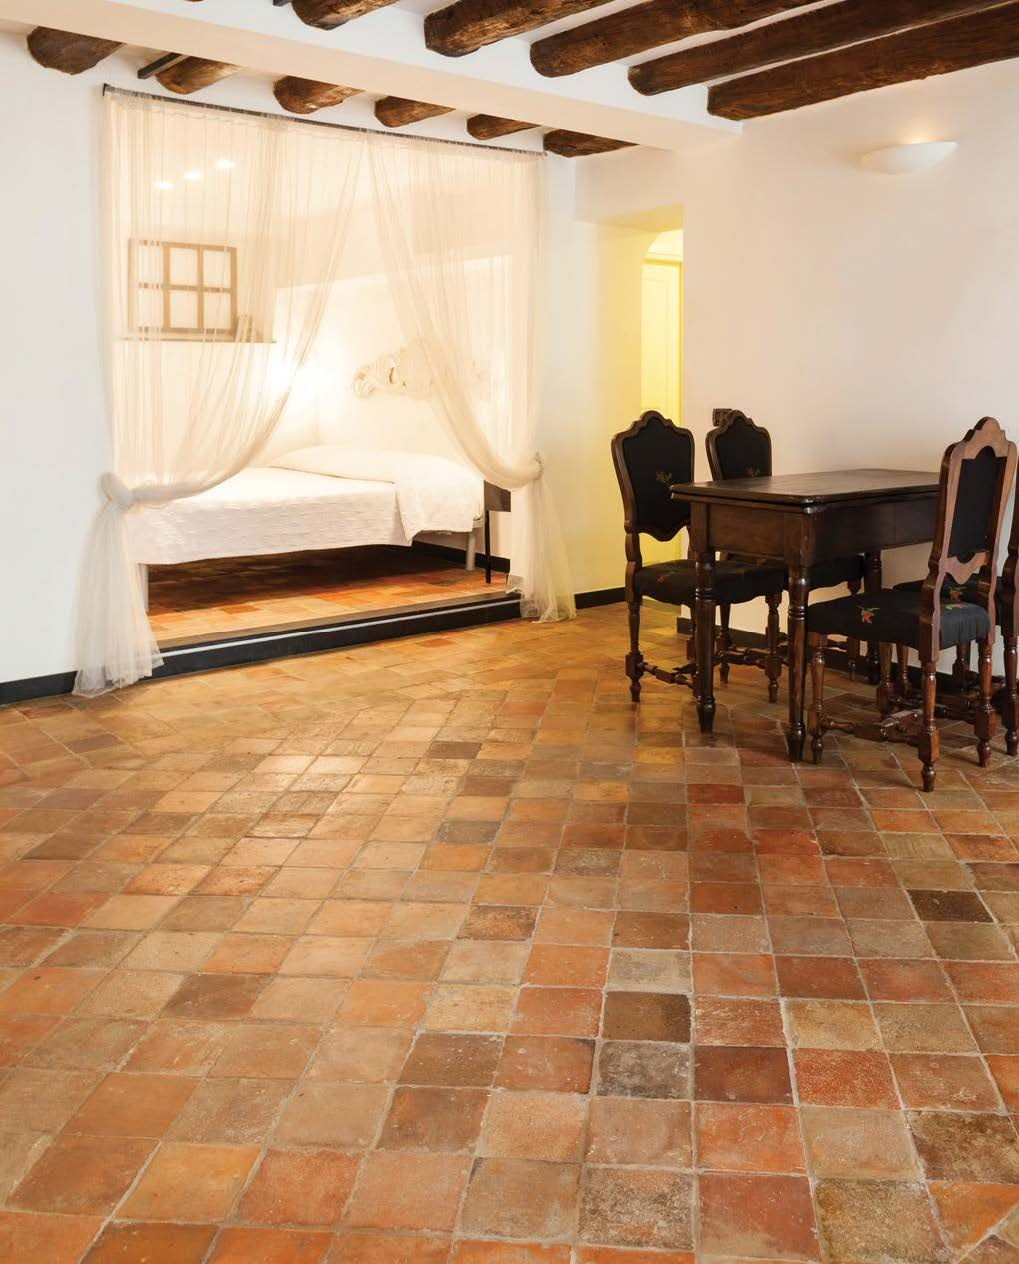 Authentic Reclaimed Terracotta Floor Tiles Dating Back From 100 To